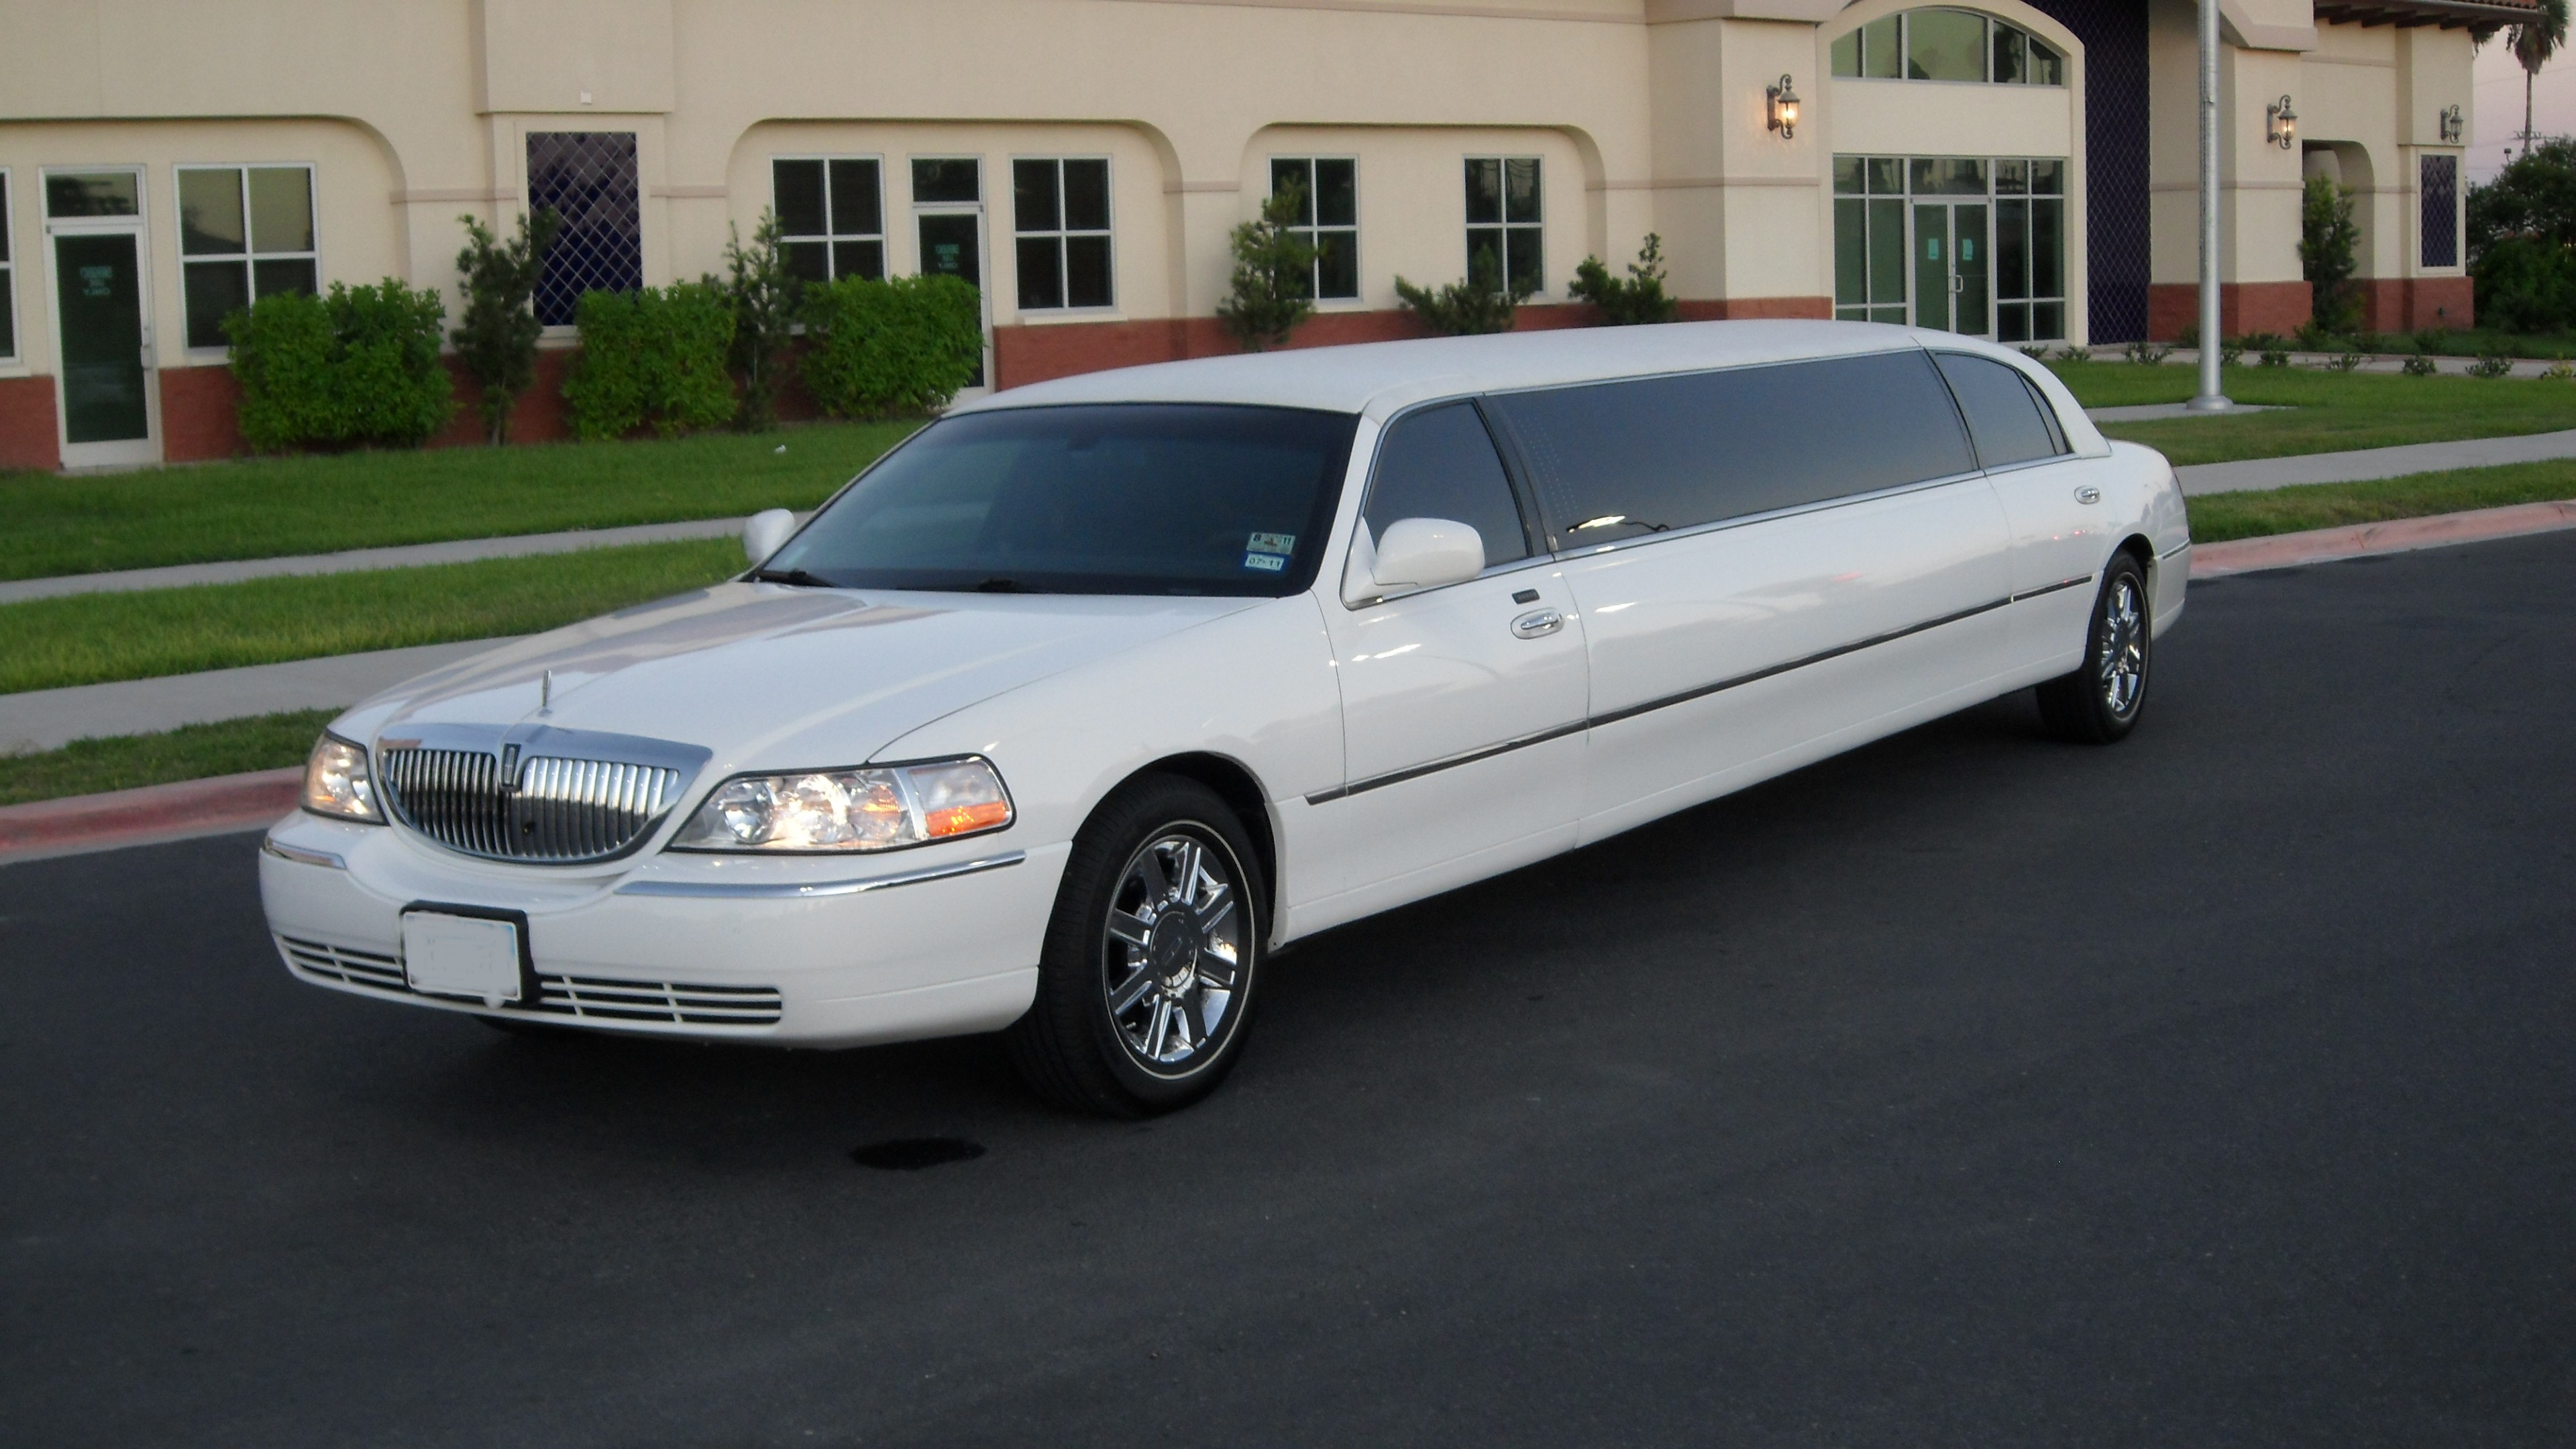 Image result for pictures of limos